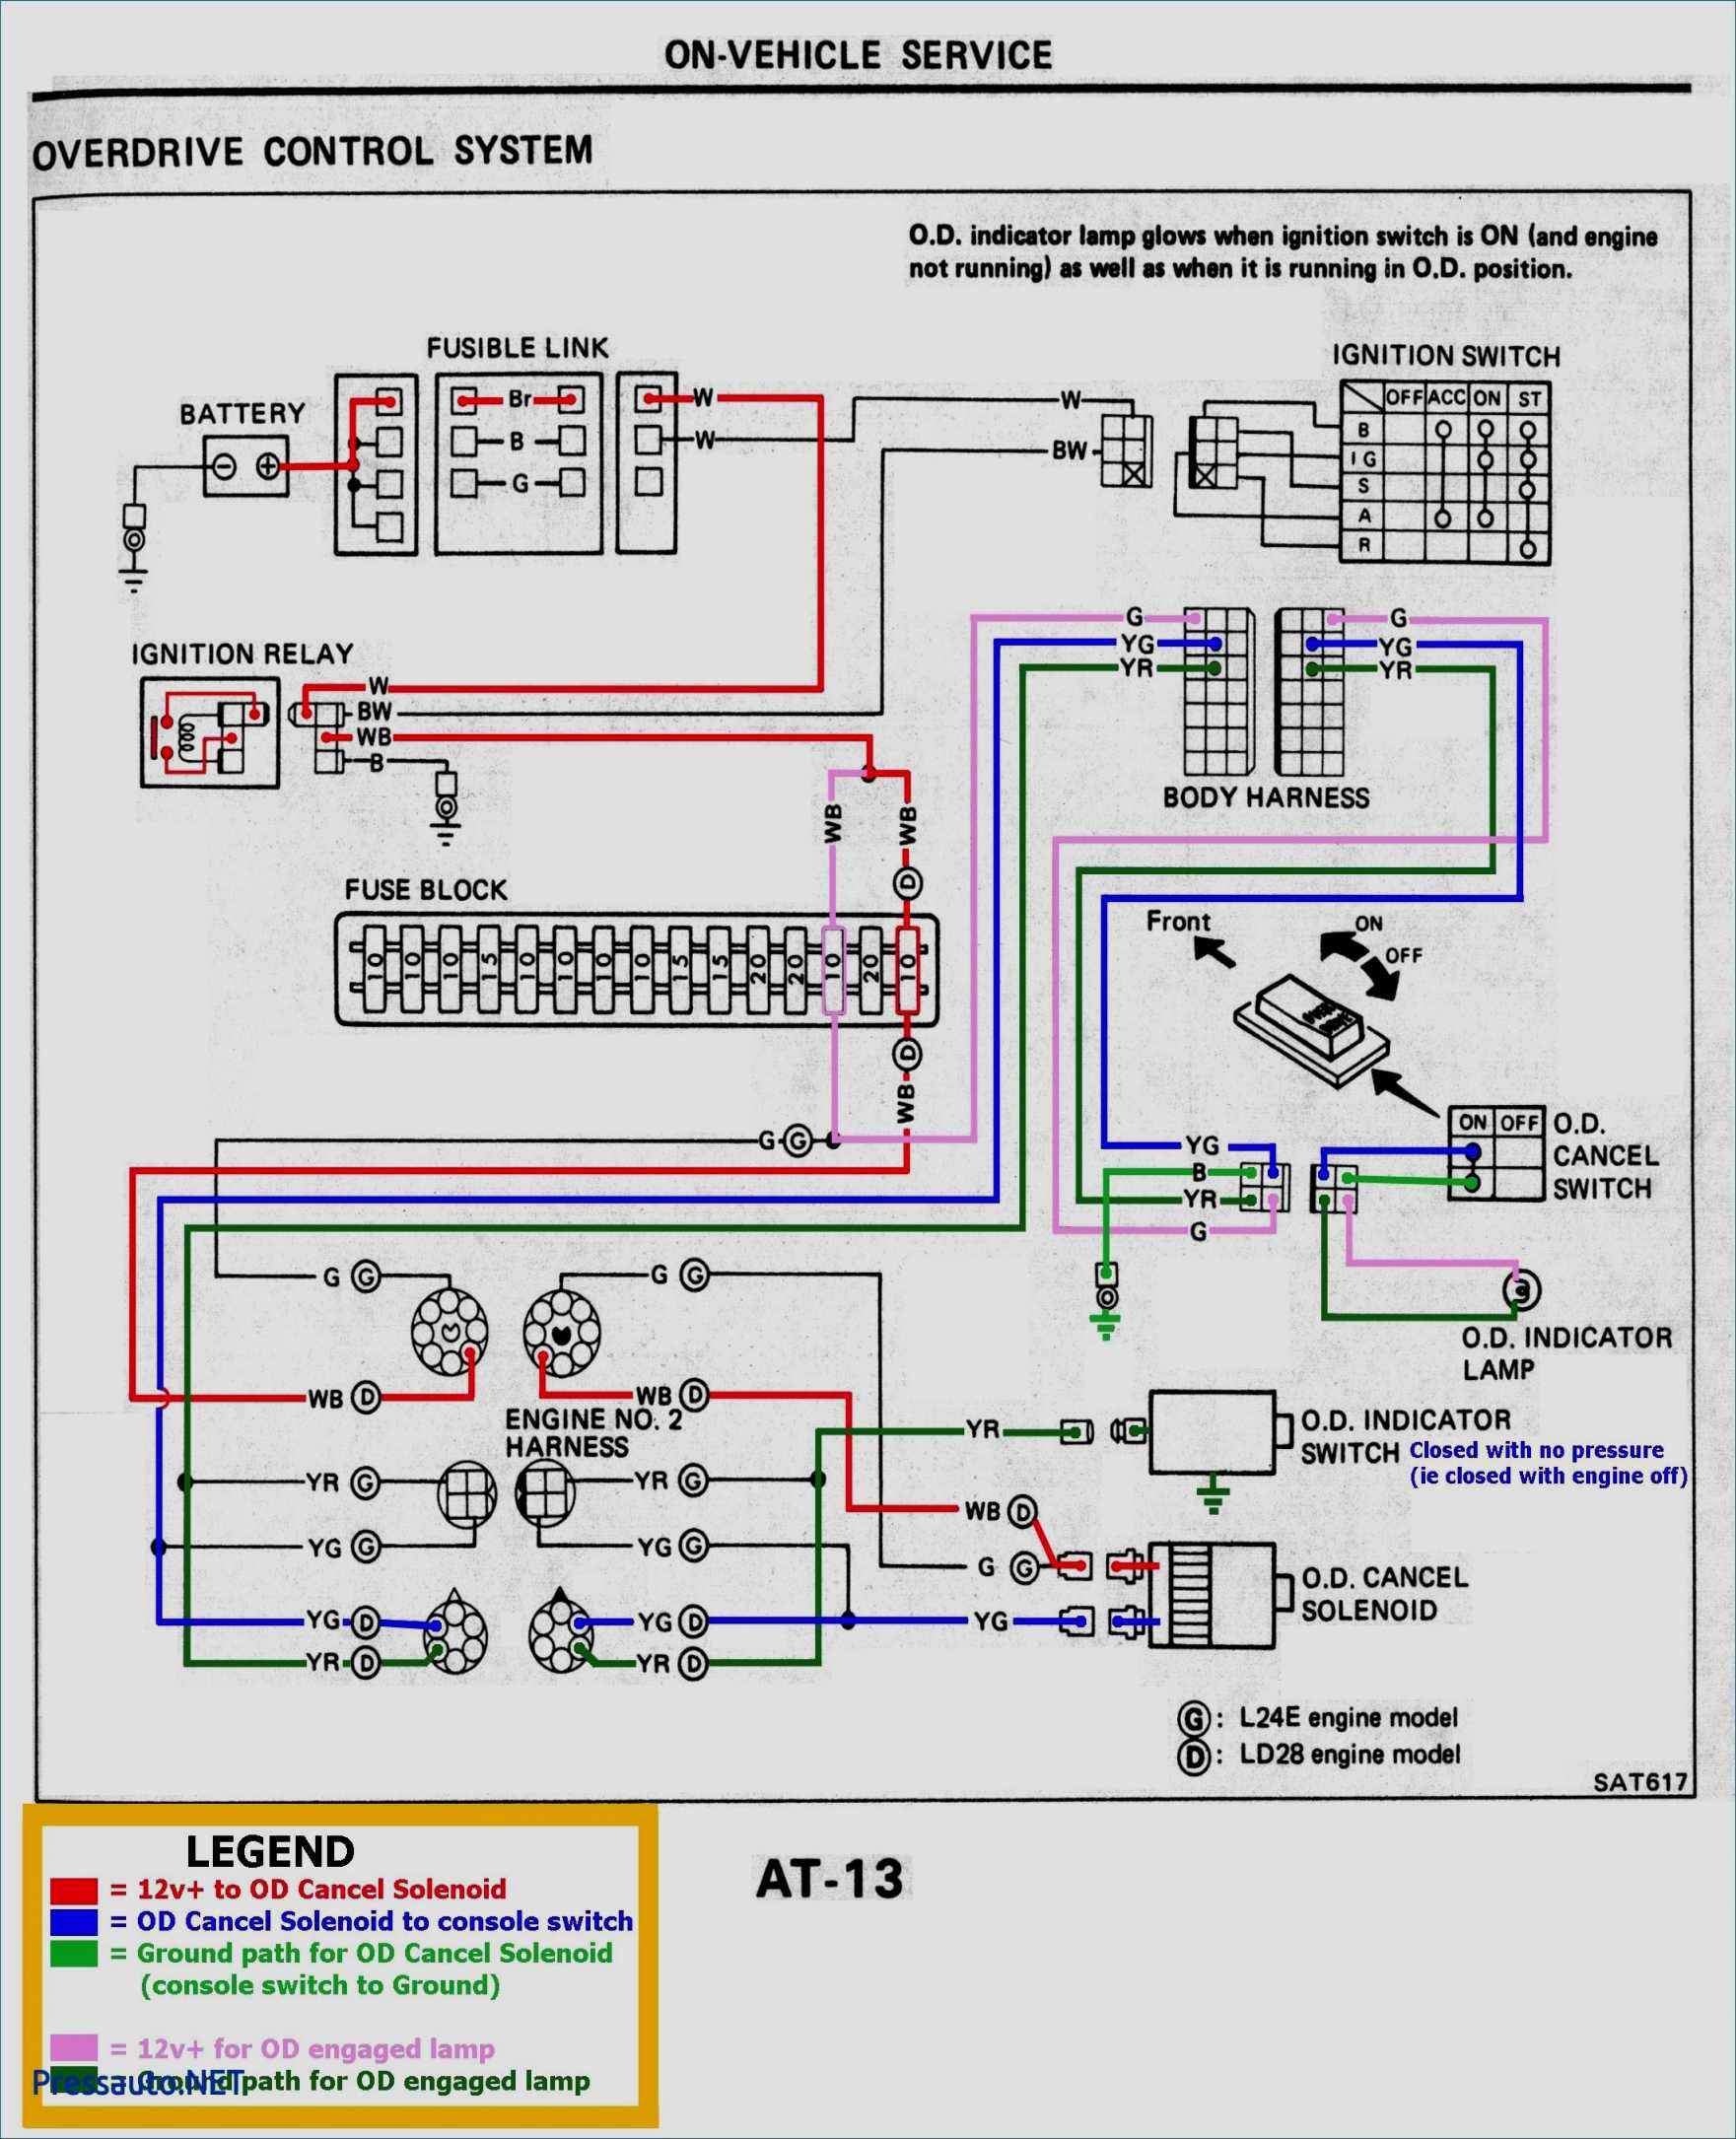 Telephone Wire Diagram Ford Fusion Parts Diagram Private Sharing - Telephone Wiring Diagram